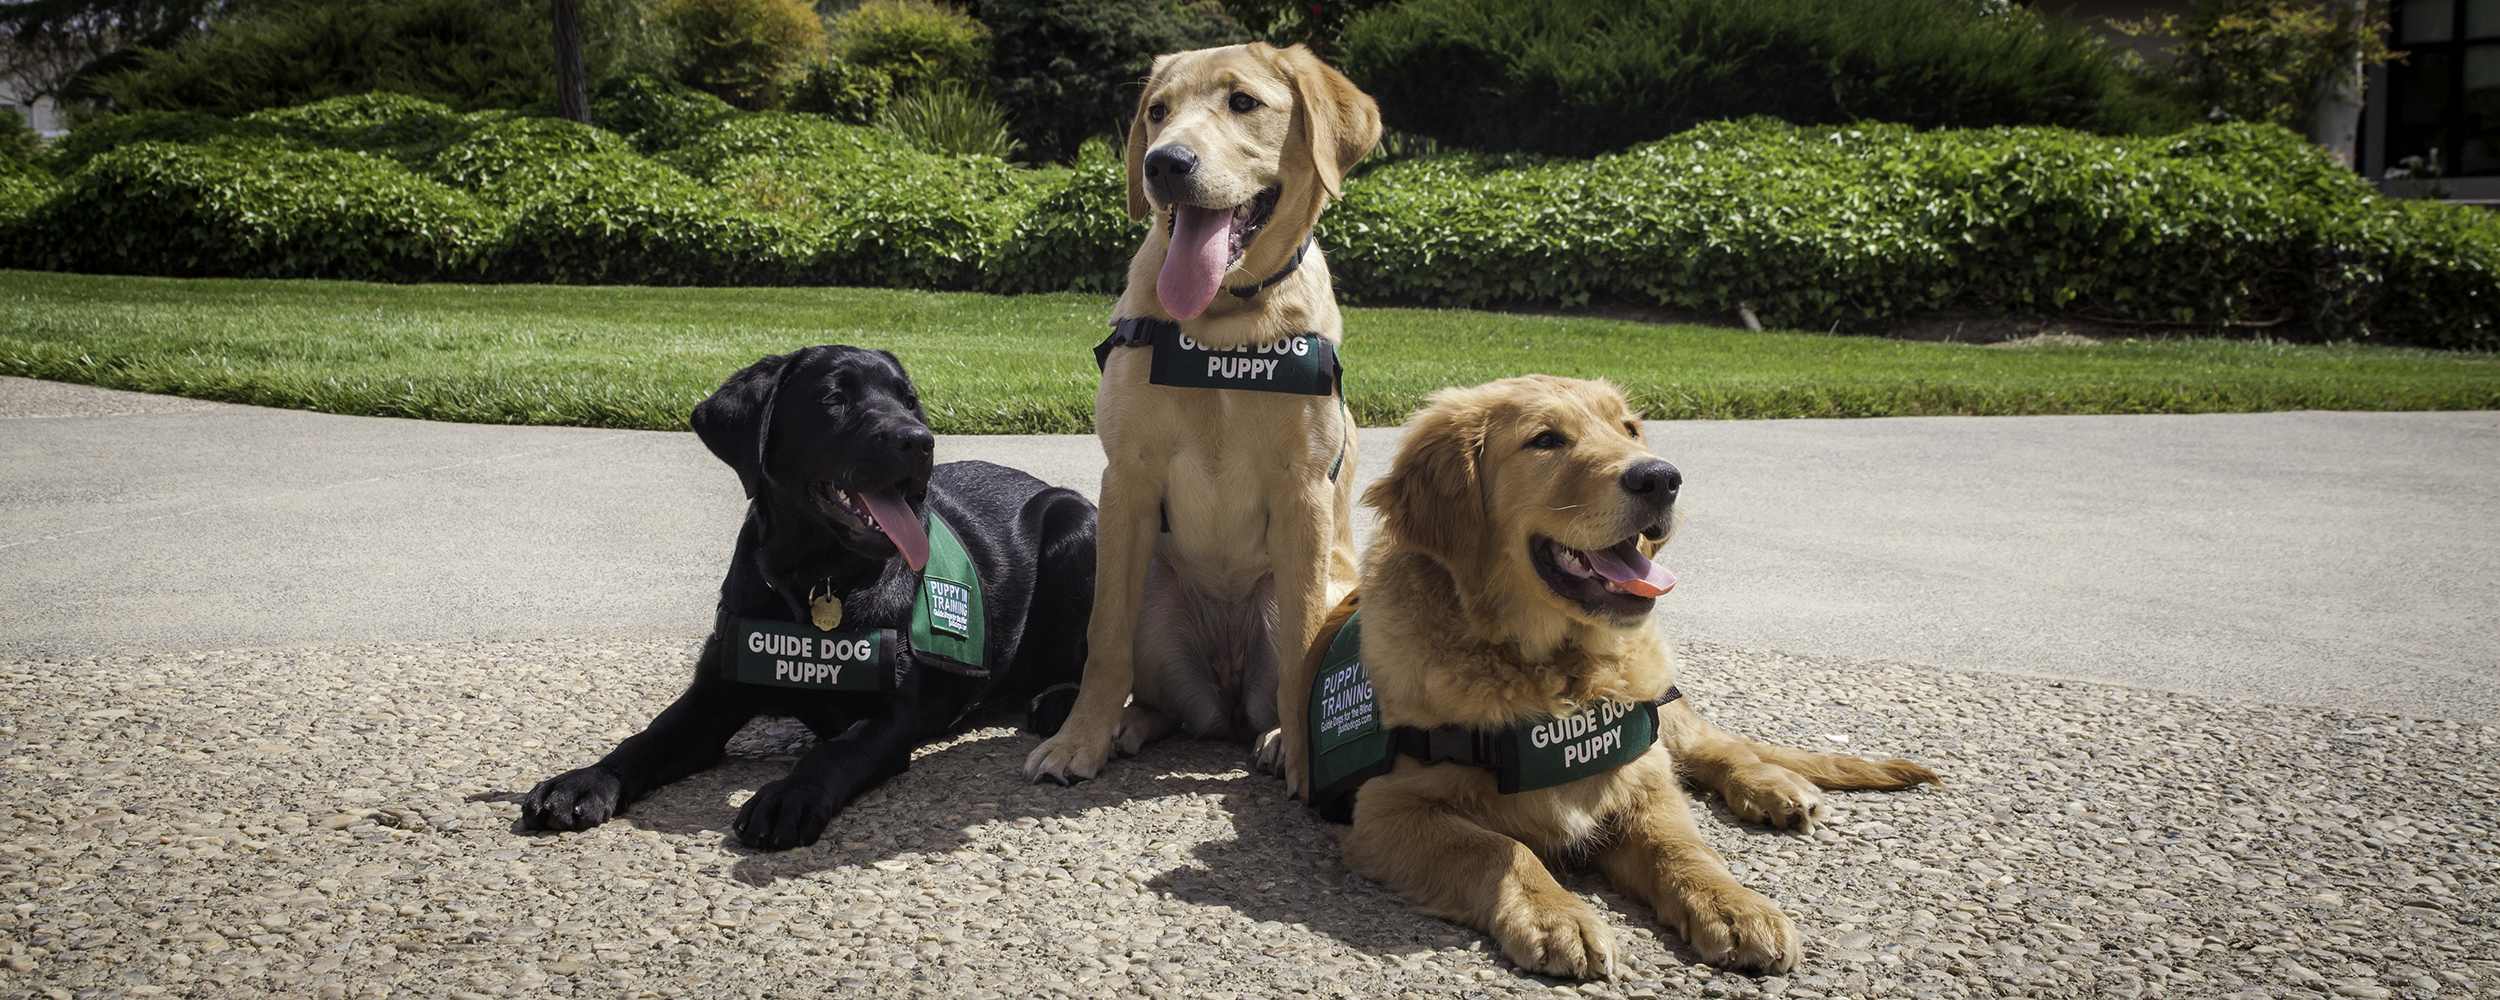 Three guide dog puppies (a black Lab, yellow Lab, and Golden Retriever) wearing their green puppy jackets